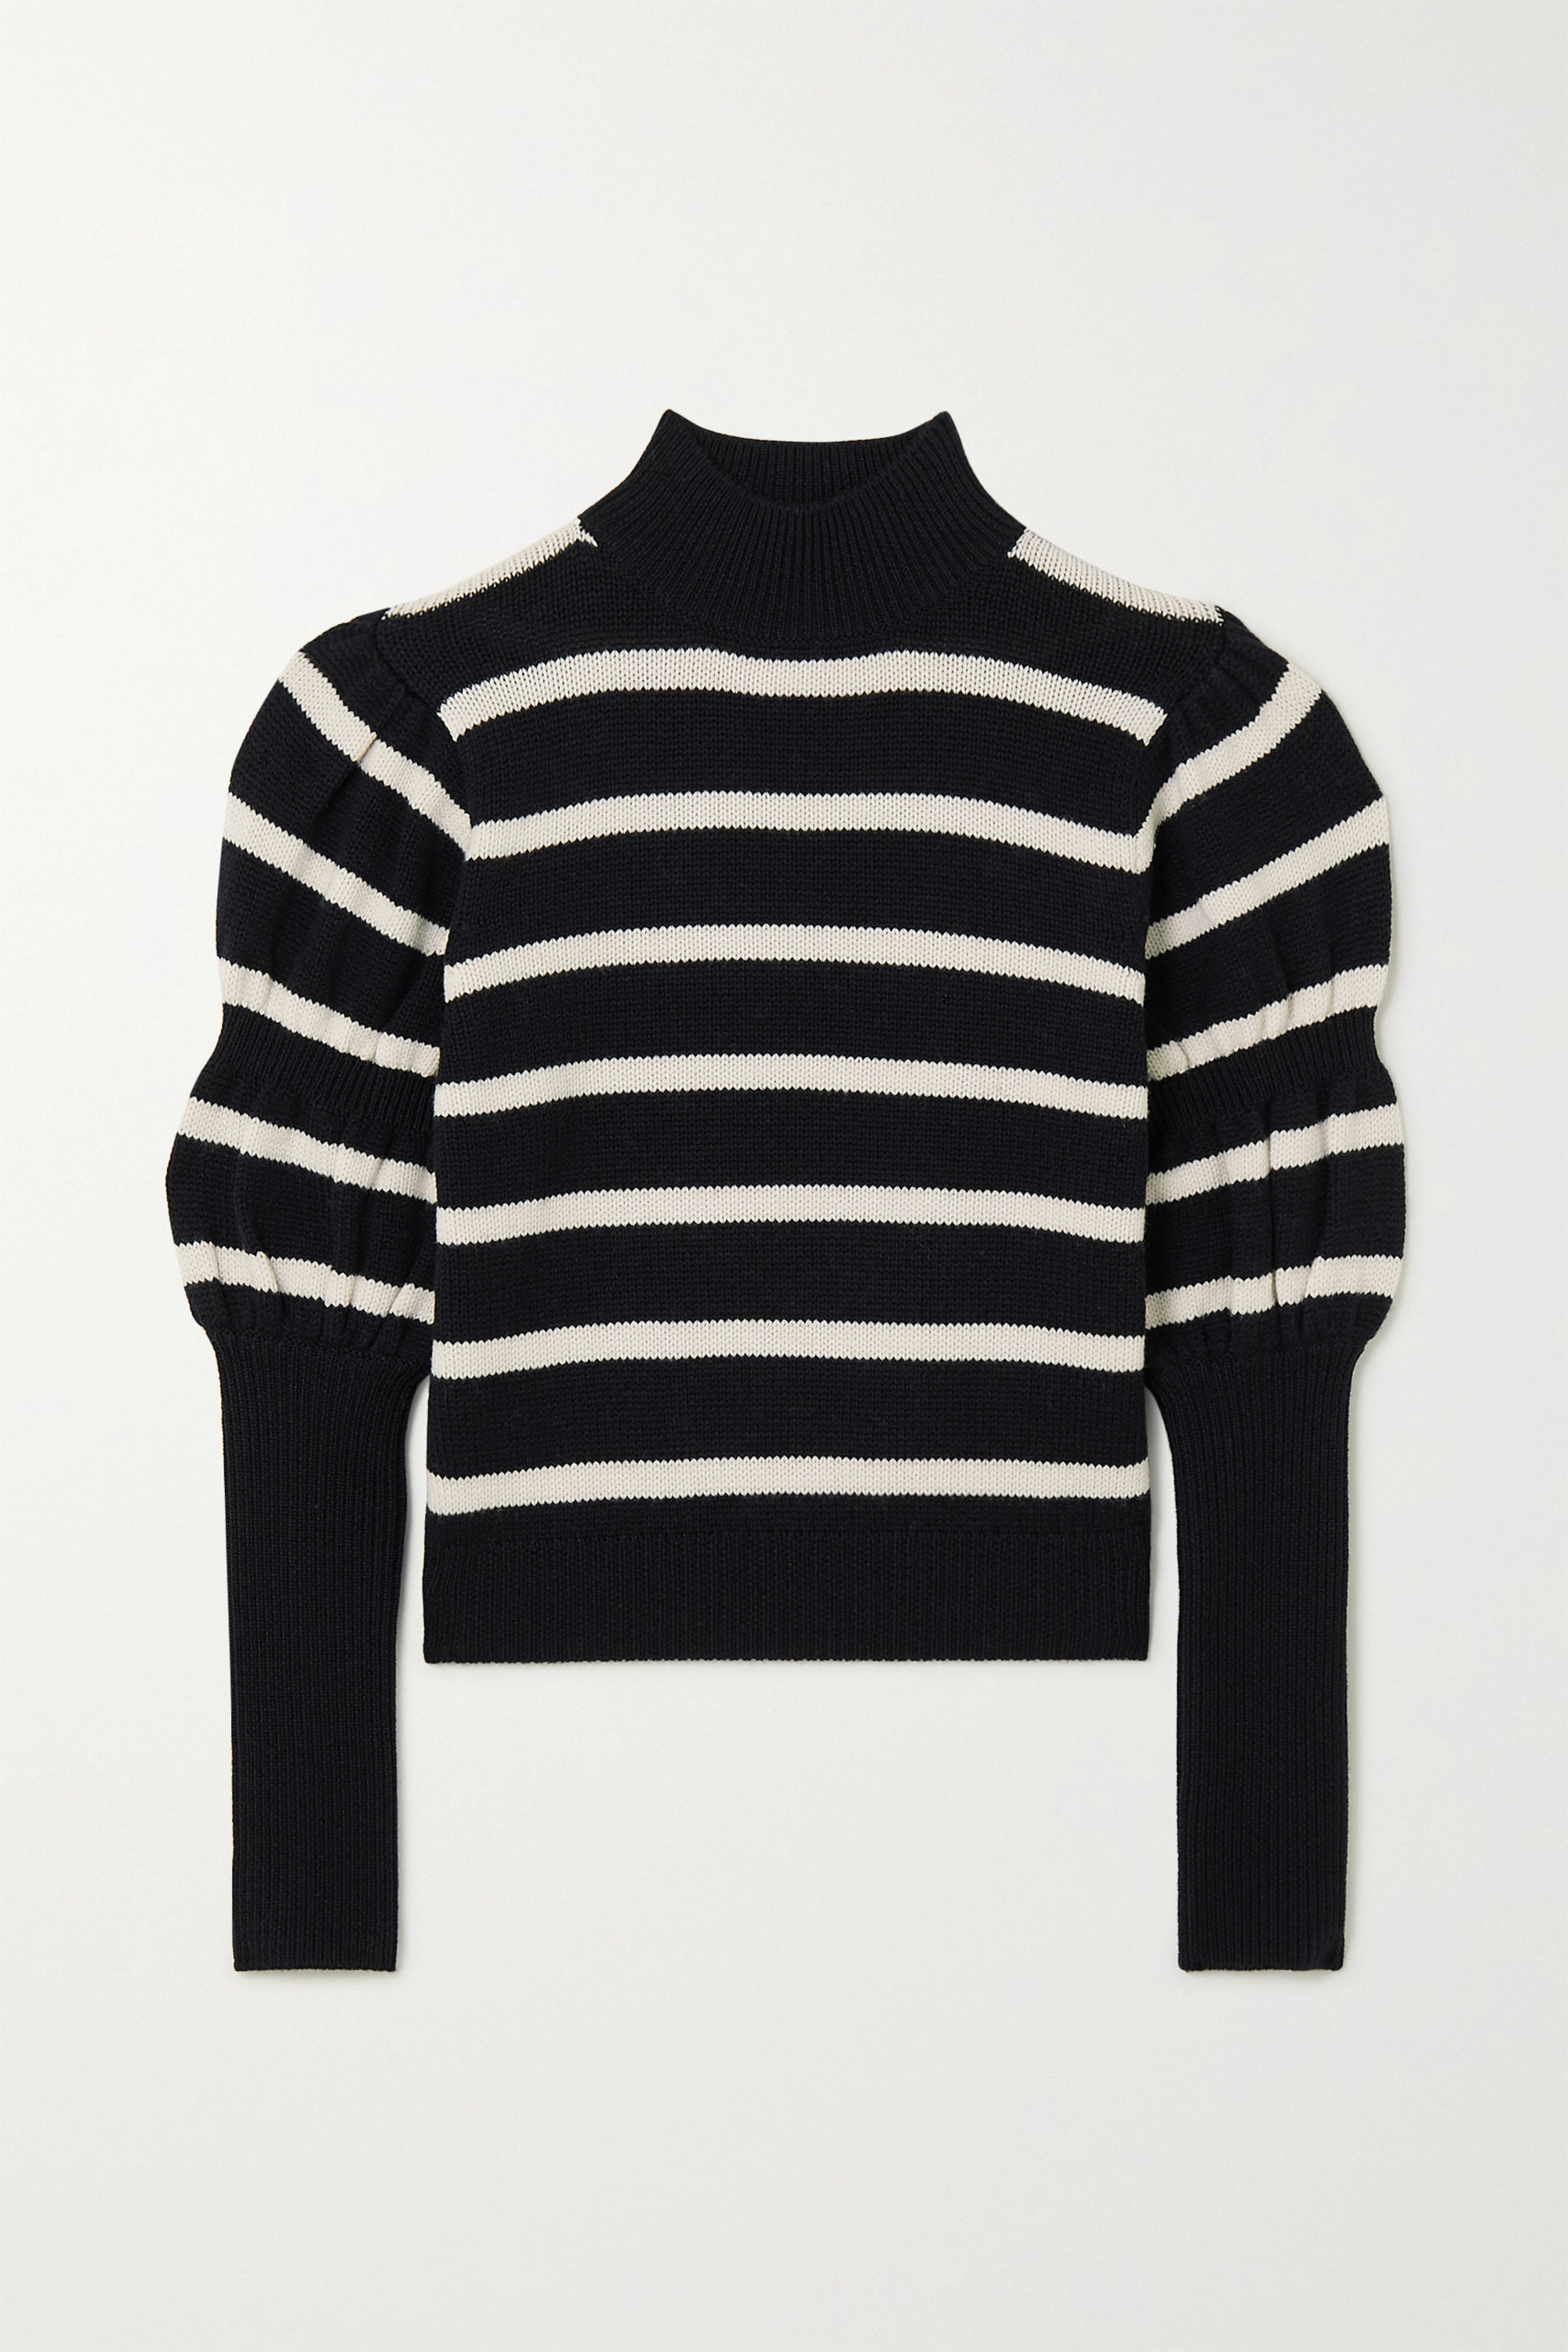 Derek Lam 10 Crosby Elani cropped striped merino wool sweater